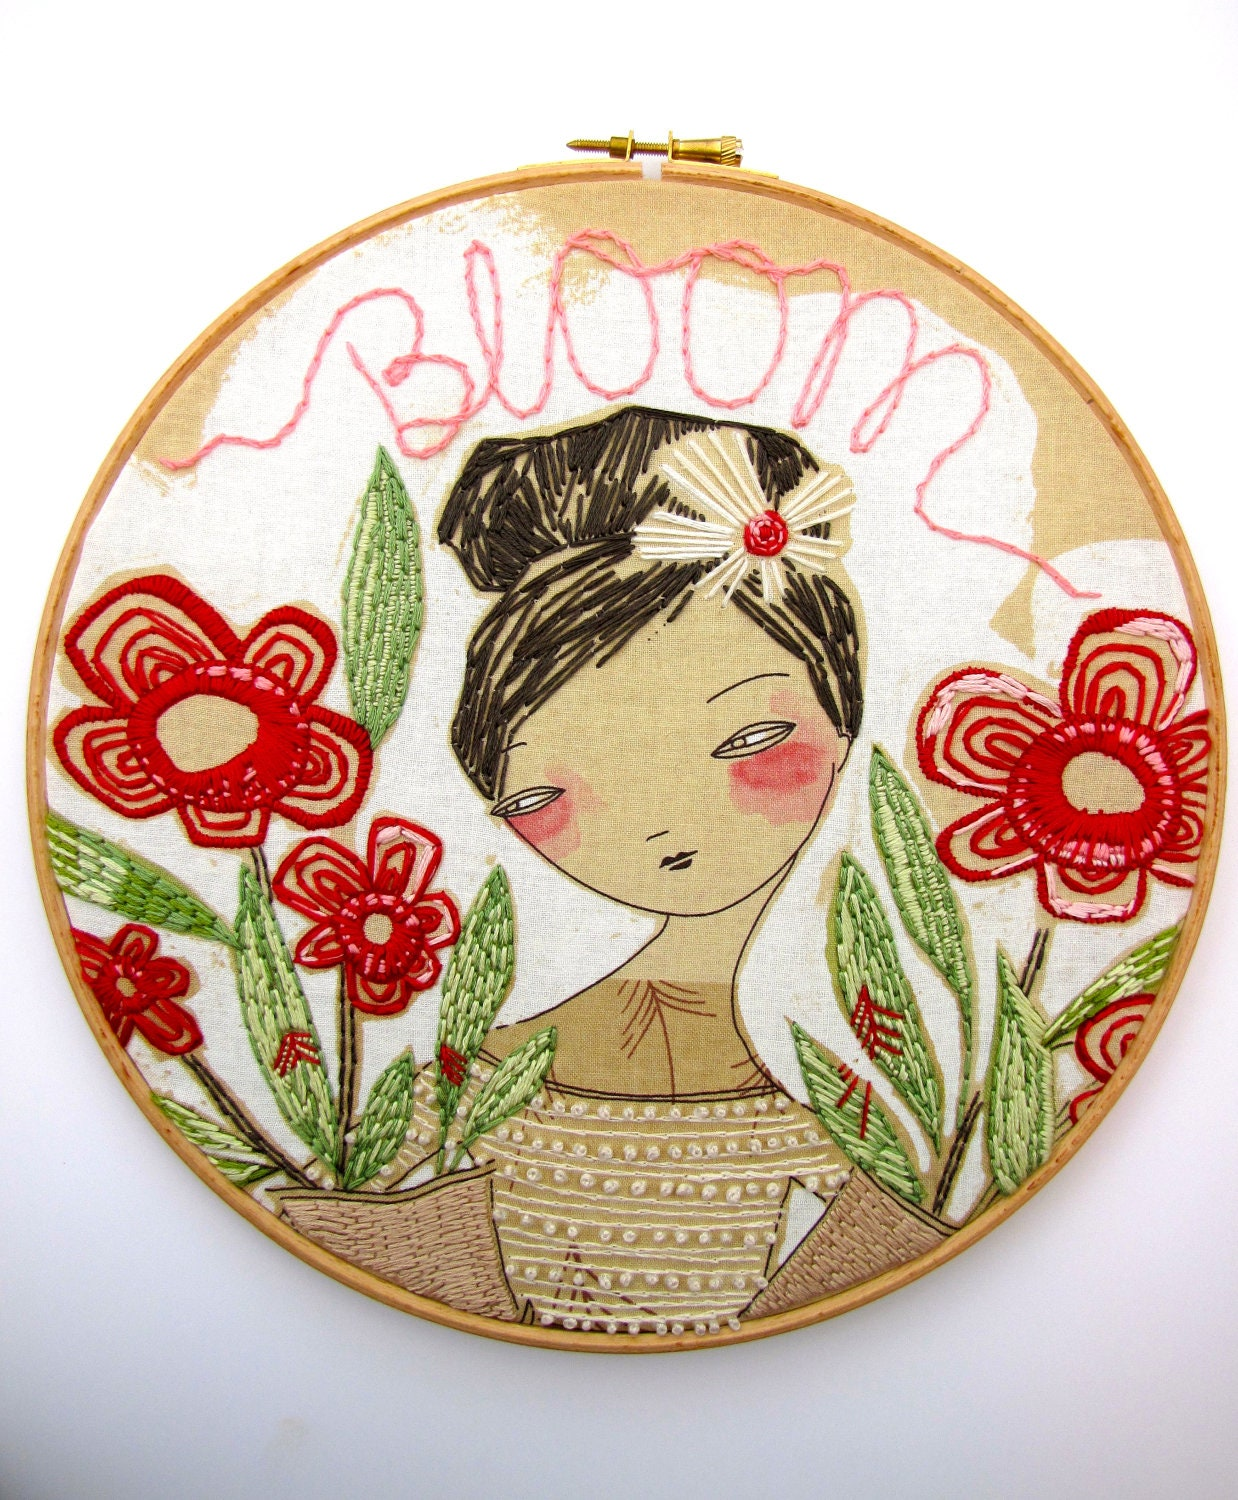 Bloom hand embroidery hoop art red and green flowers